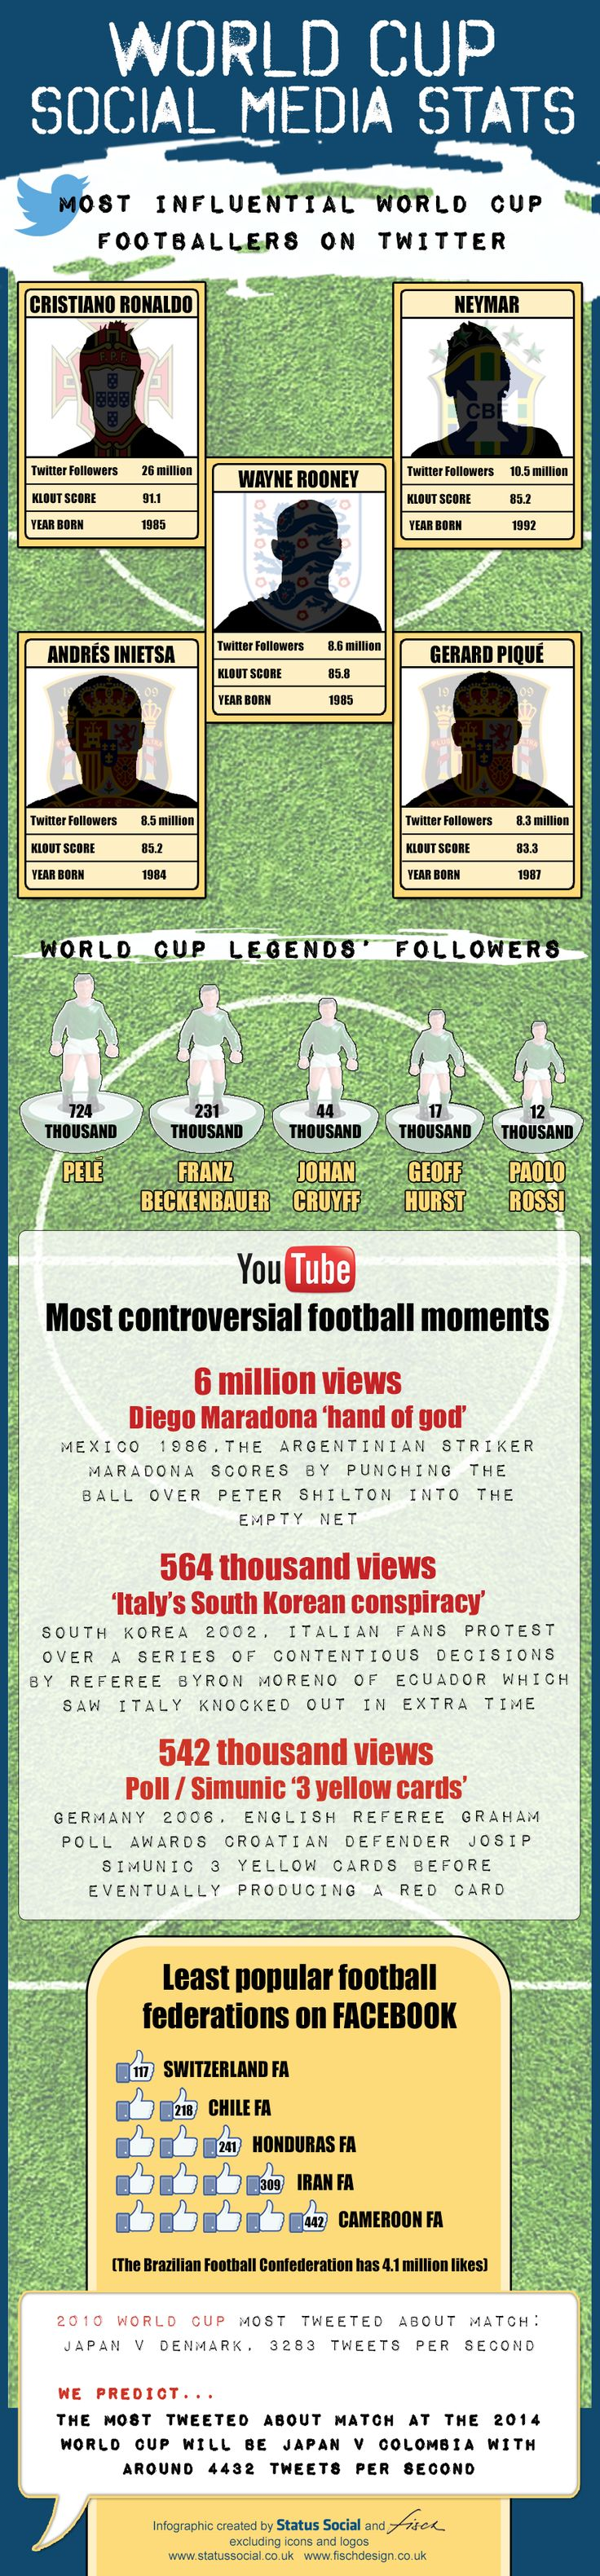 World Cup social media statistics - who is the most influential footballer, what is the most watched World Cup YouTube video, the most popular World Cup football federation, the most followed World Cup legend and the most tweeted about match...? #WorldCup2014 #WorldCup